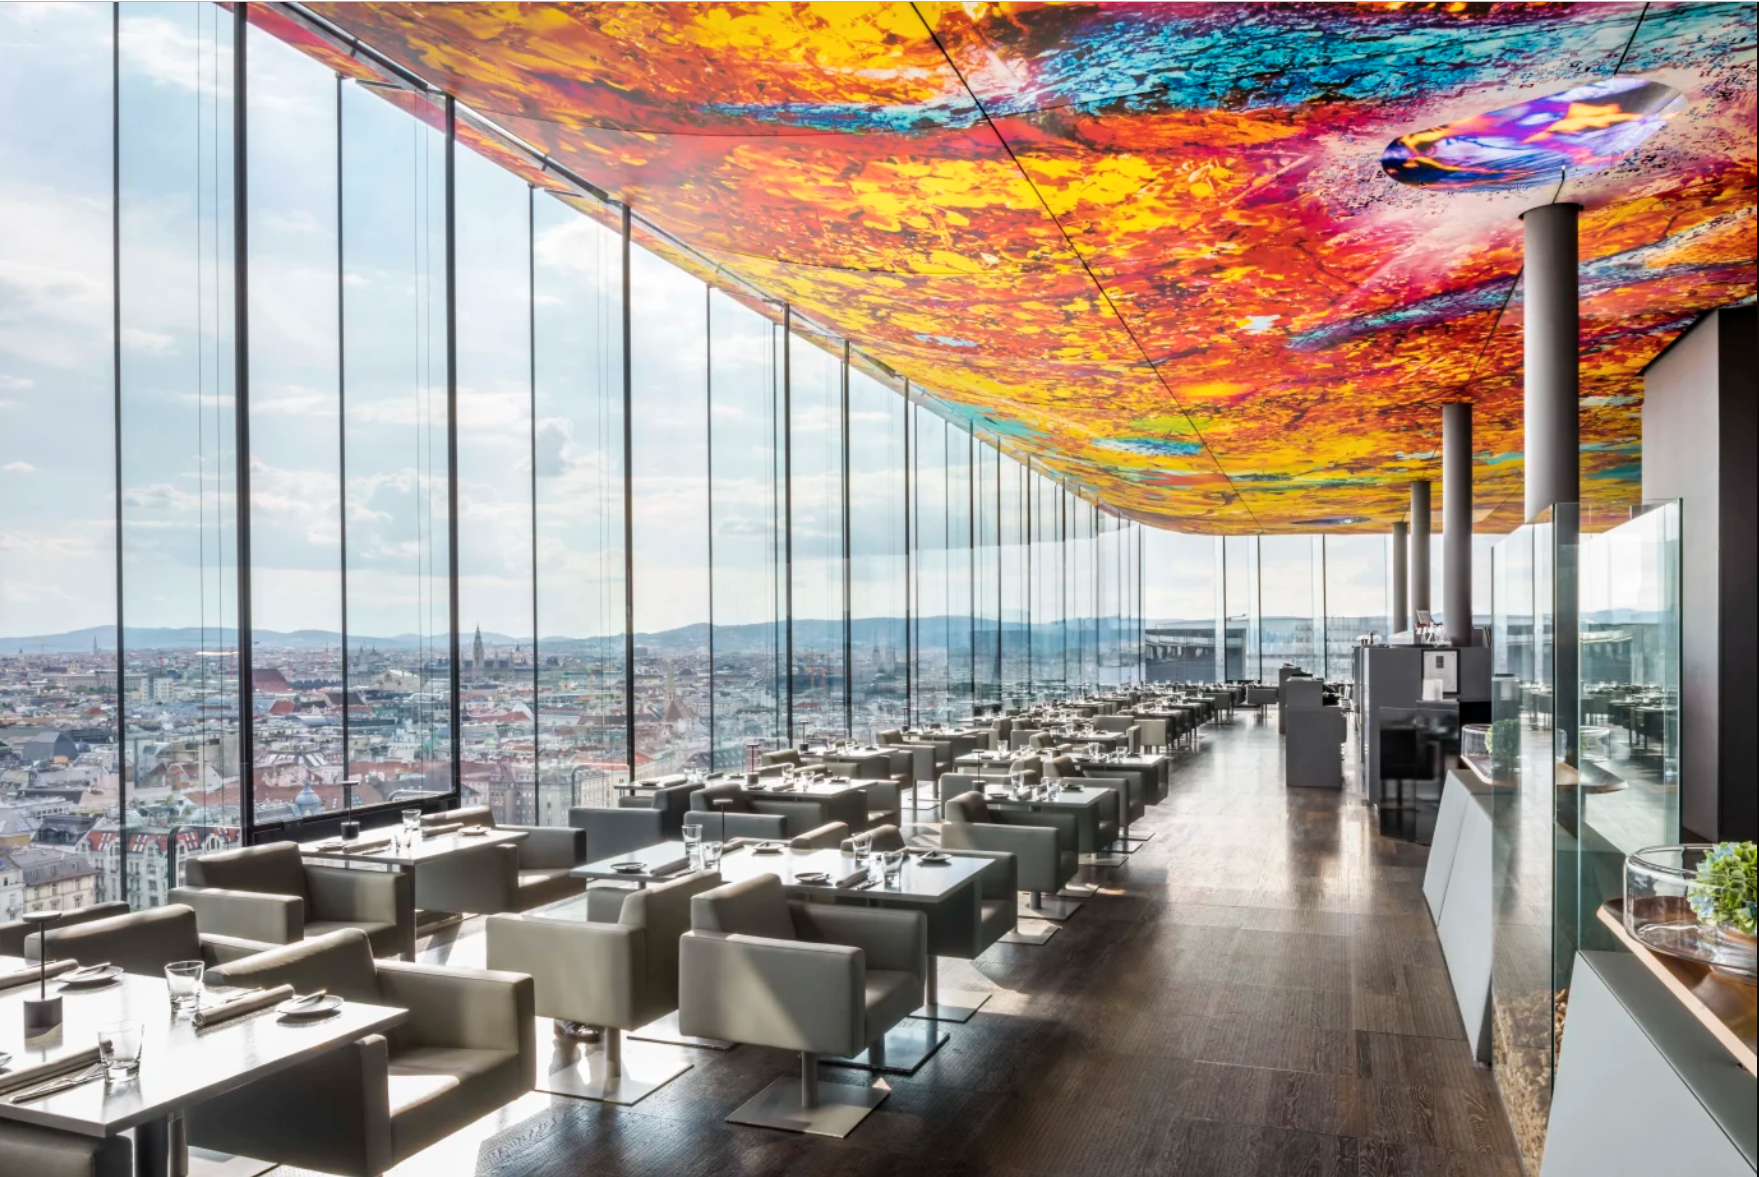 Accor roundup: 21c Museum Hotels joins MGallery, SO/ Vienna wins Michelin Star